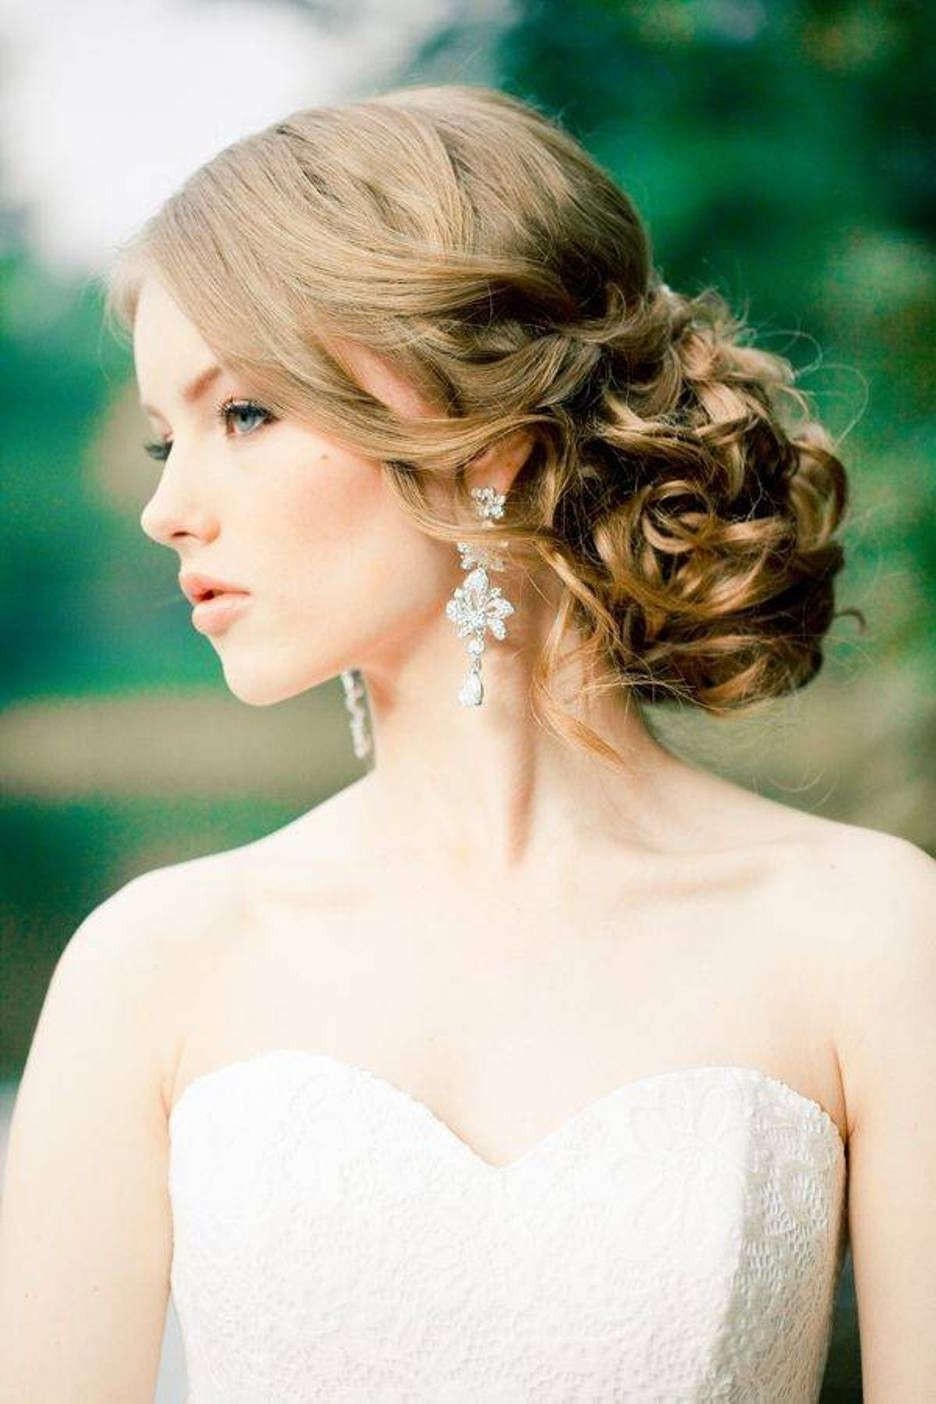 updo hairstyles for strapless wedding dress | are you really